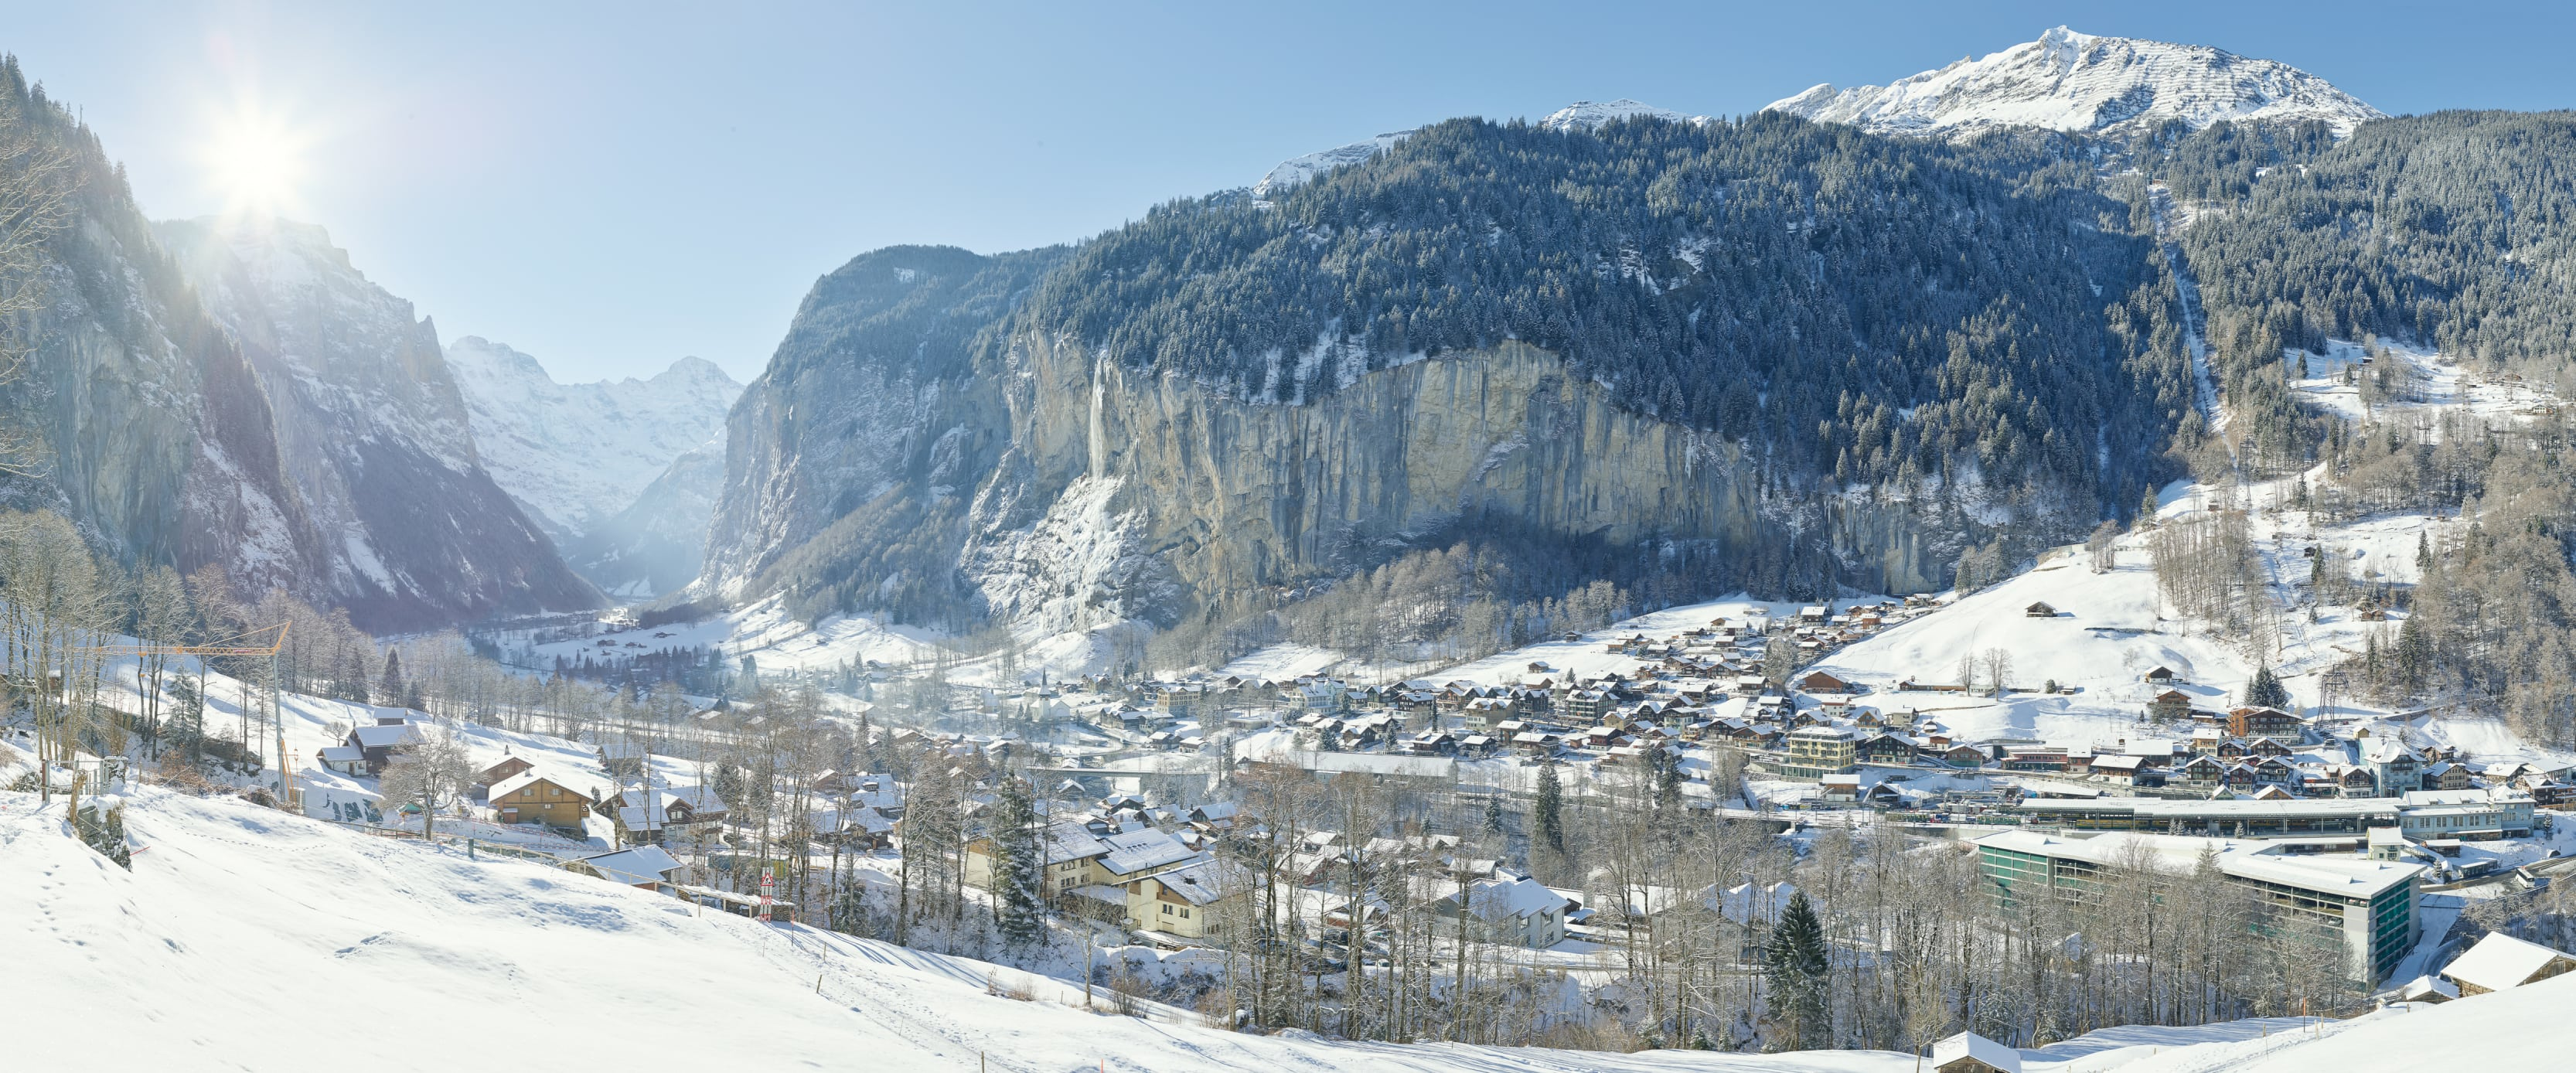 Lauterbrunnen, Staubbachfall, Winter, Panorama